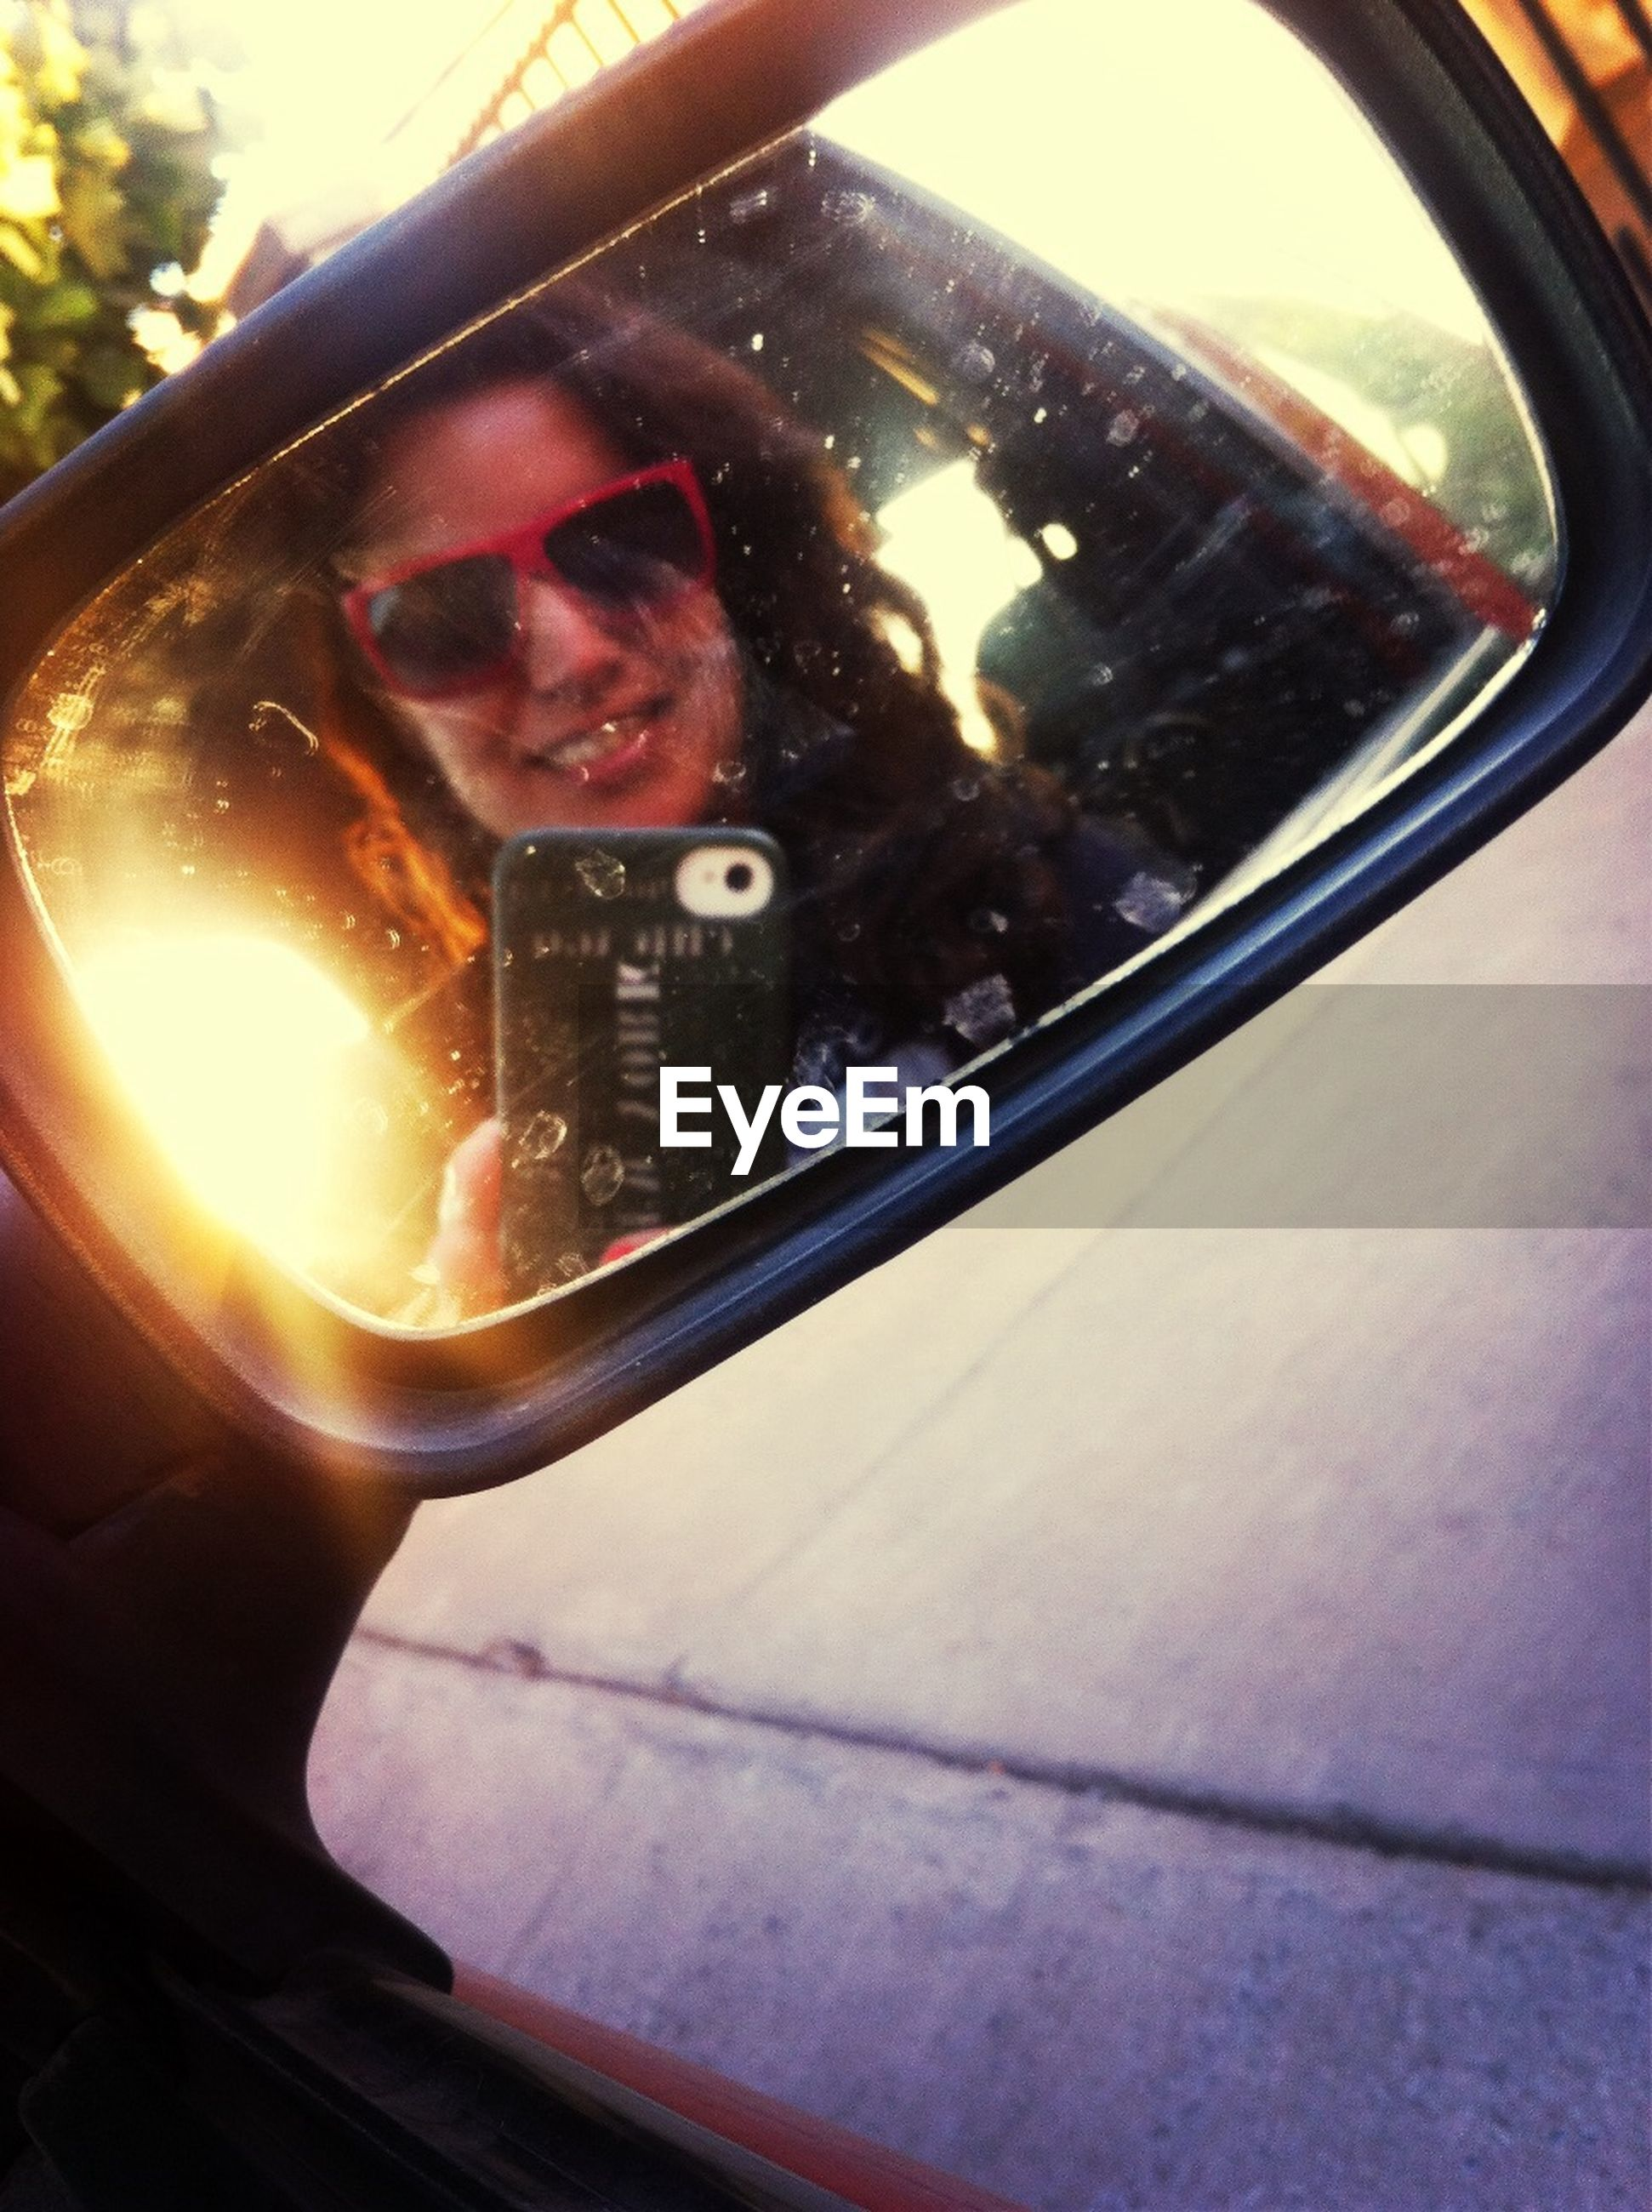 land vehicle, car, mode of transport, indoors, glass - material, vehicle interior, transportation, reflection, transparent, close-up, car interior, side-view mirror, window, photography themes, mirror, technology, part of, sunglasses